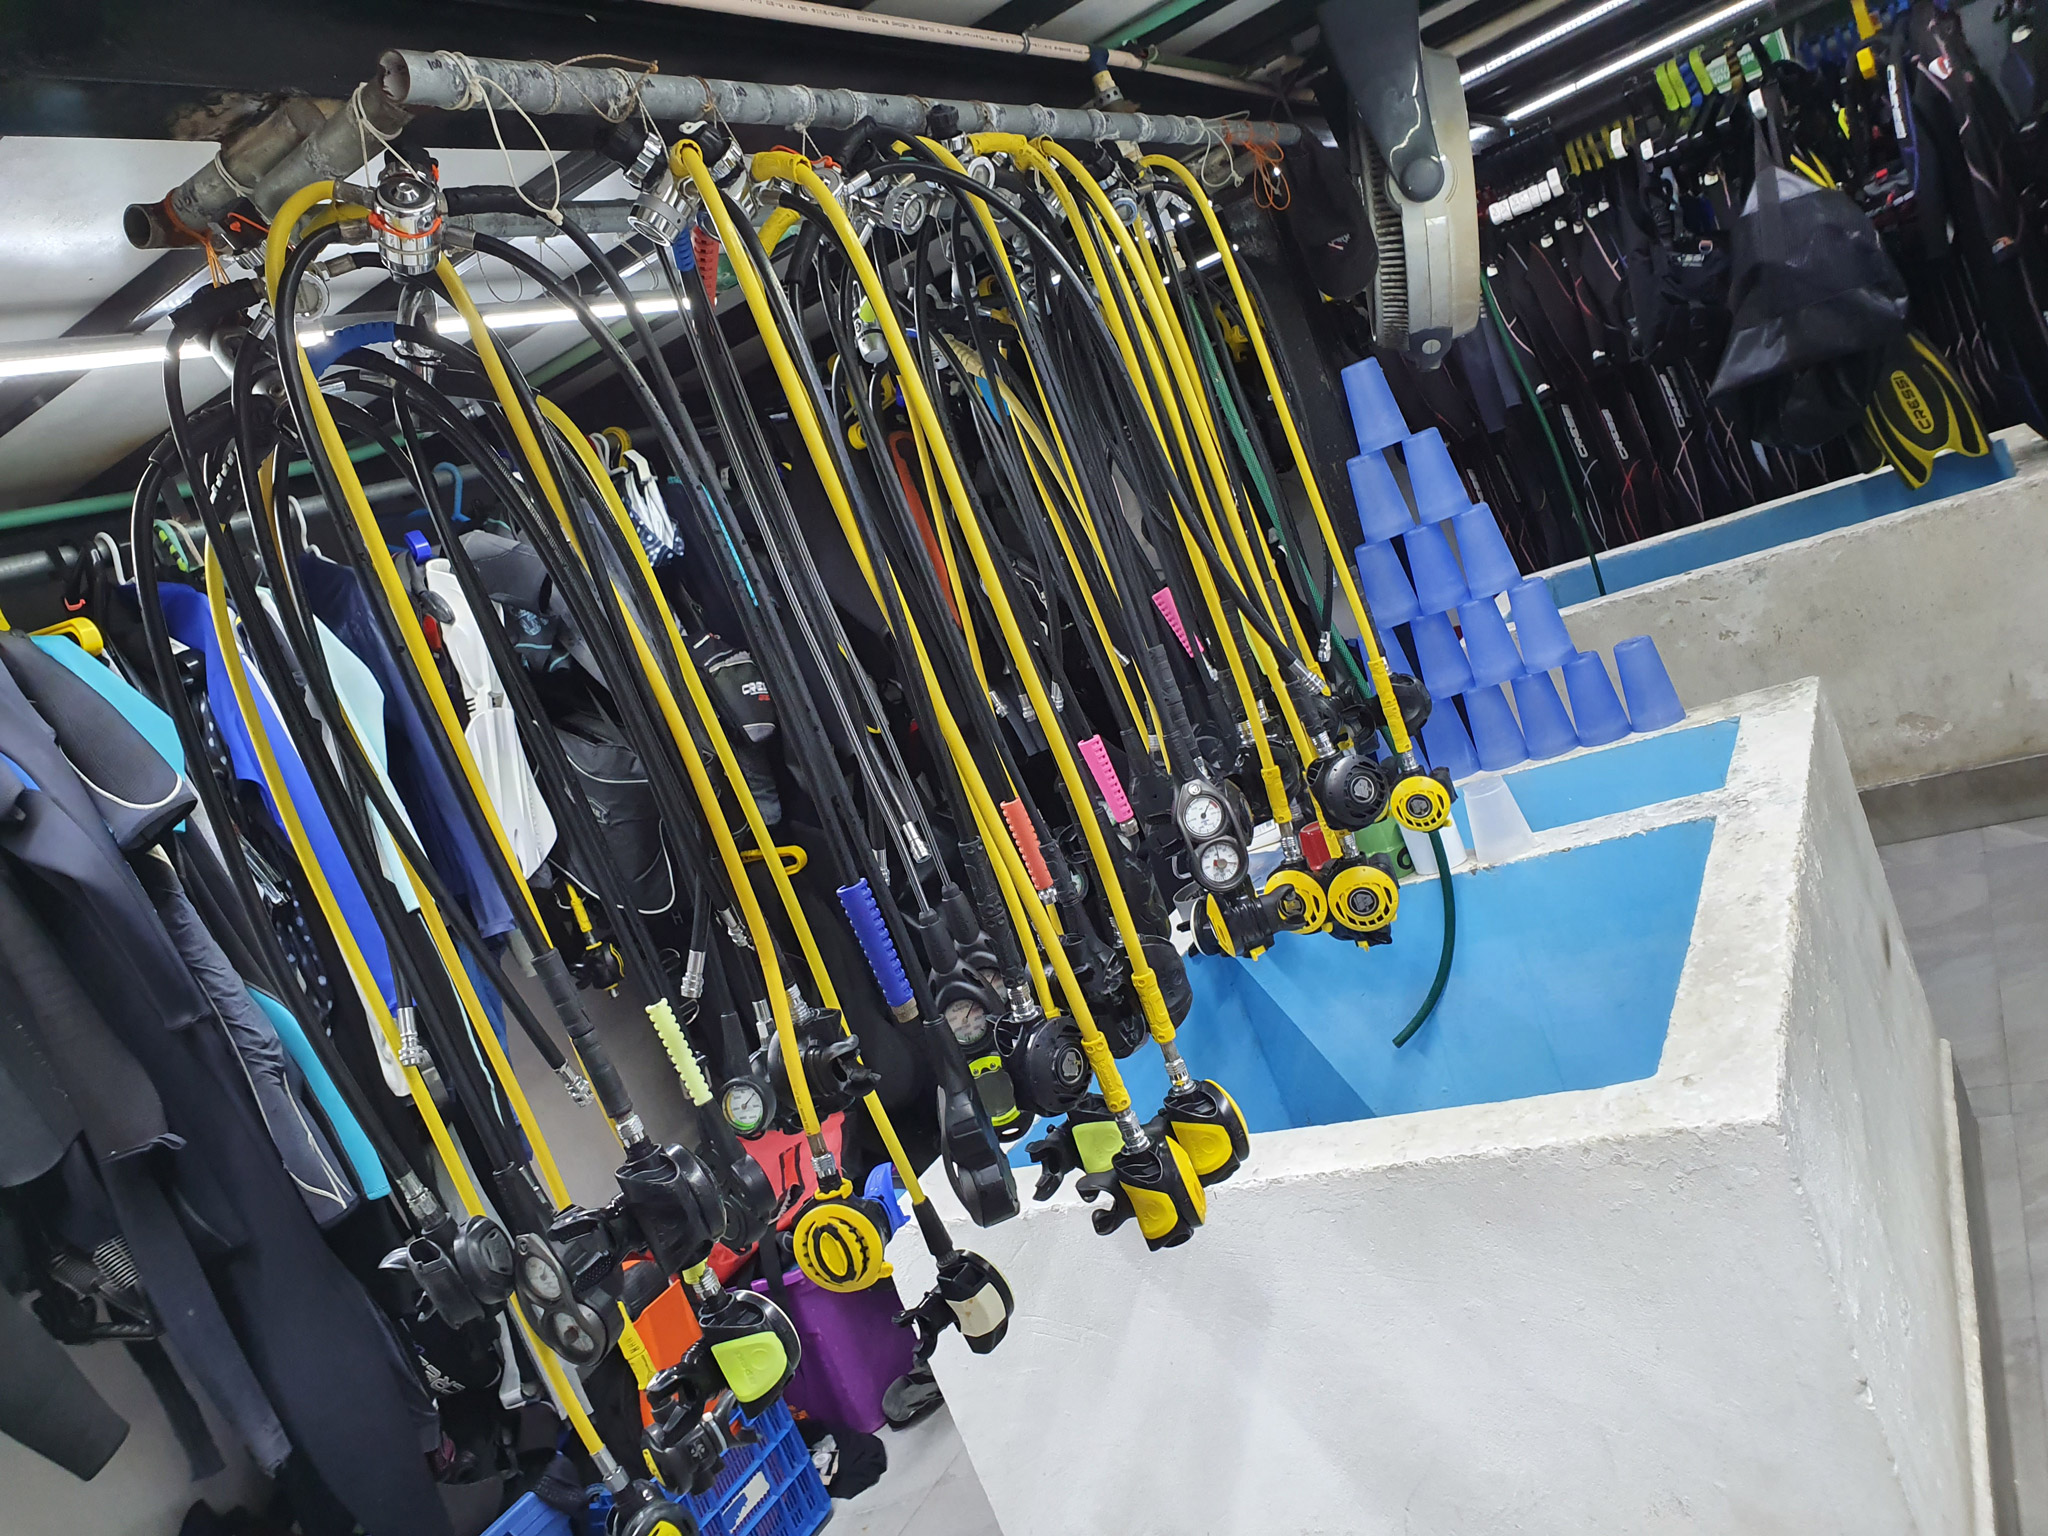 Dive Center For Sale - PADI 5-Star IDC with 30 year history. Central Playa del Carmen